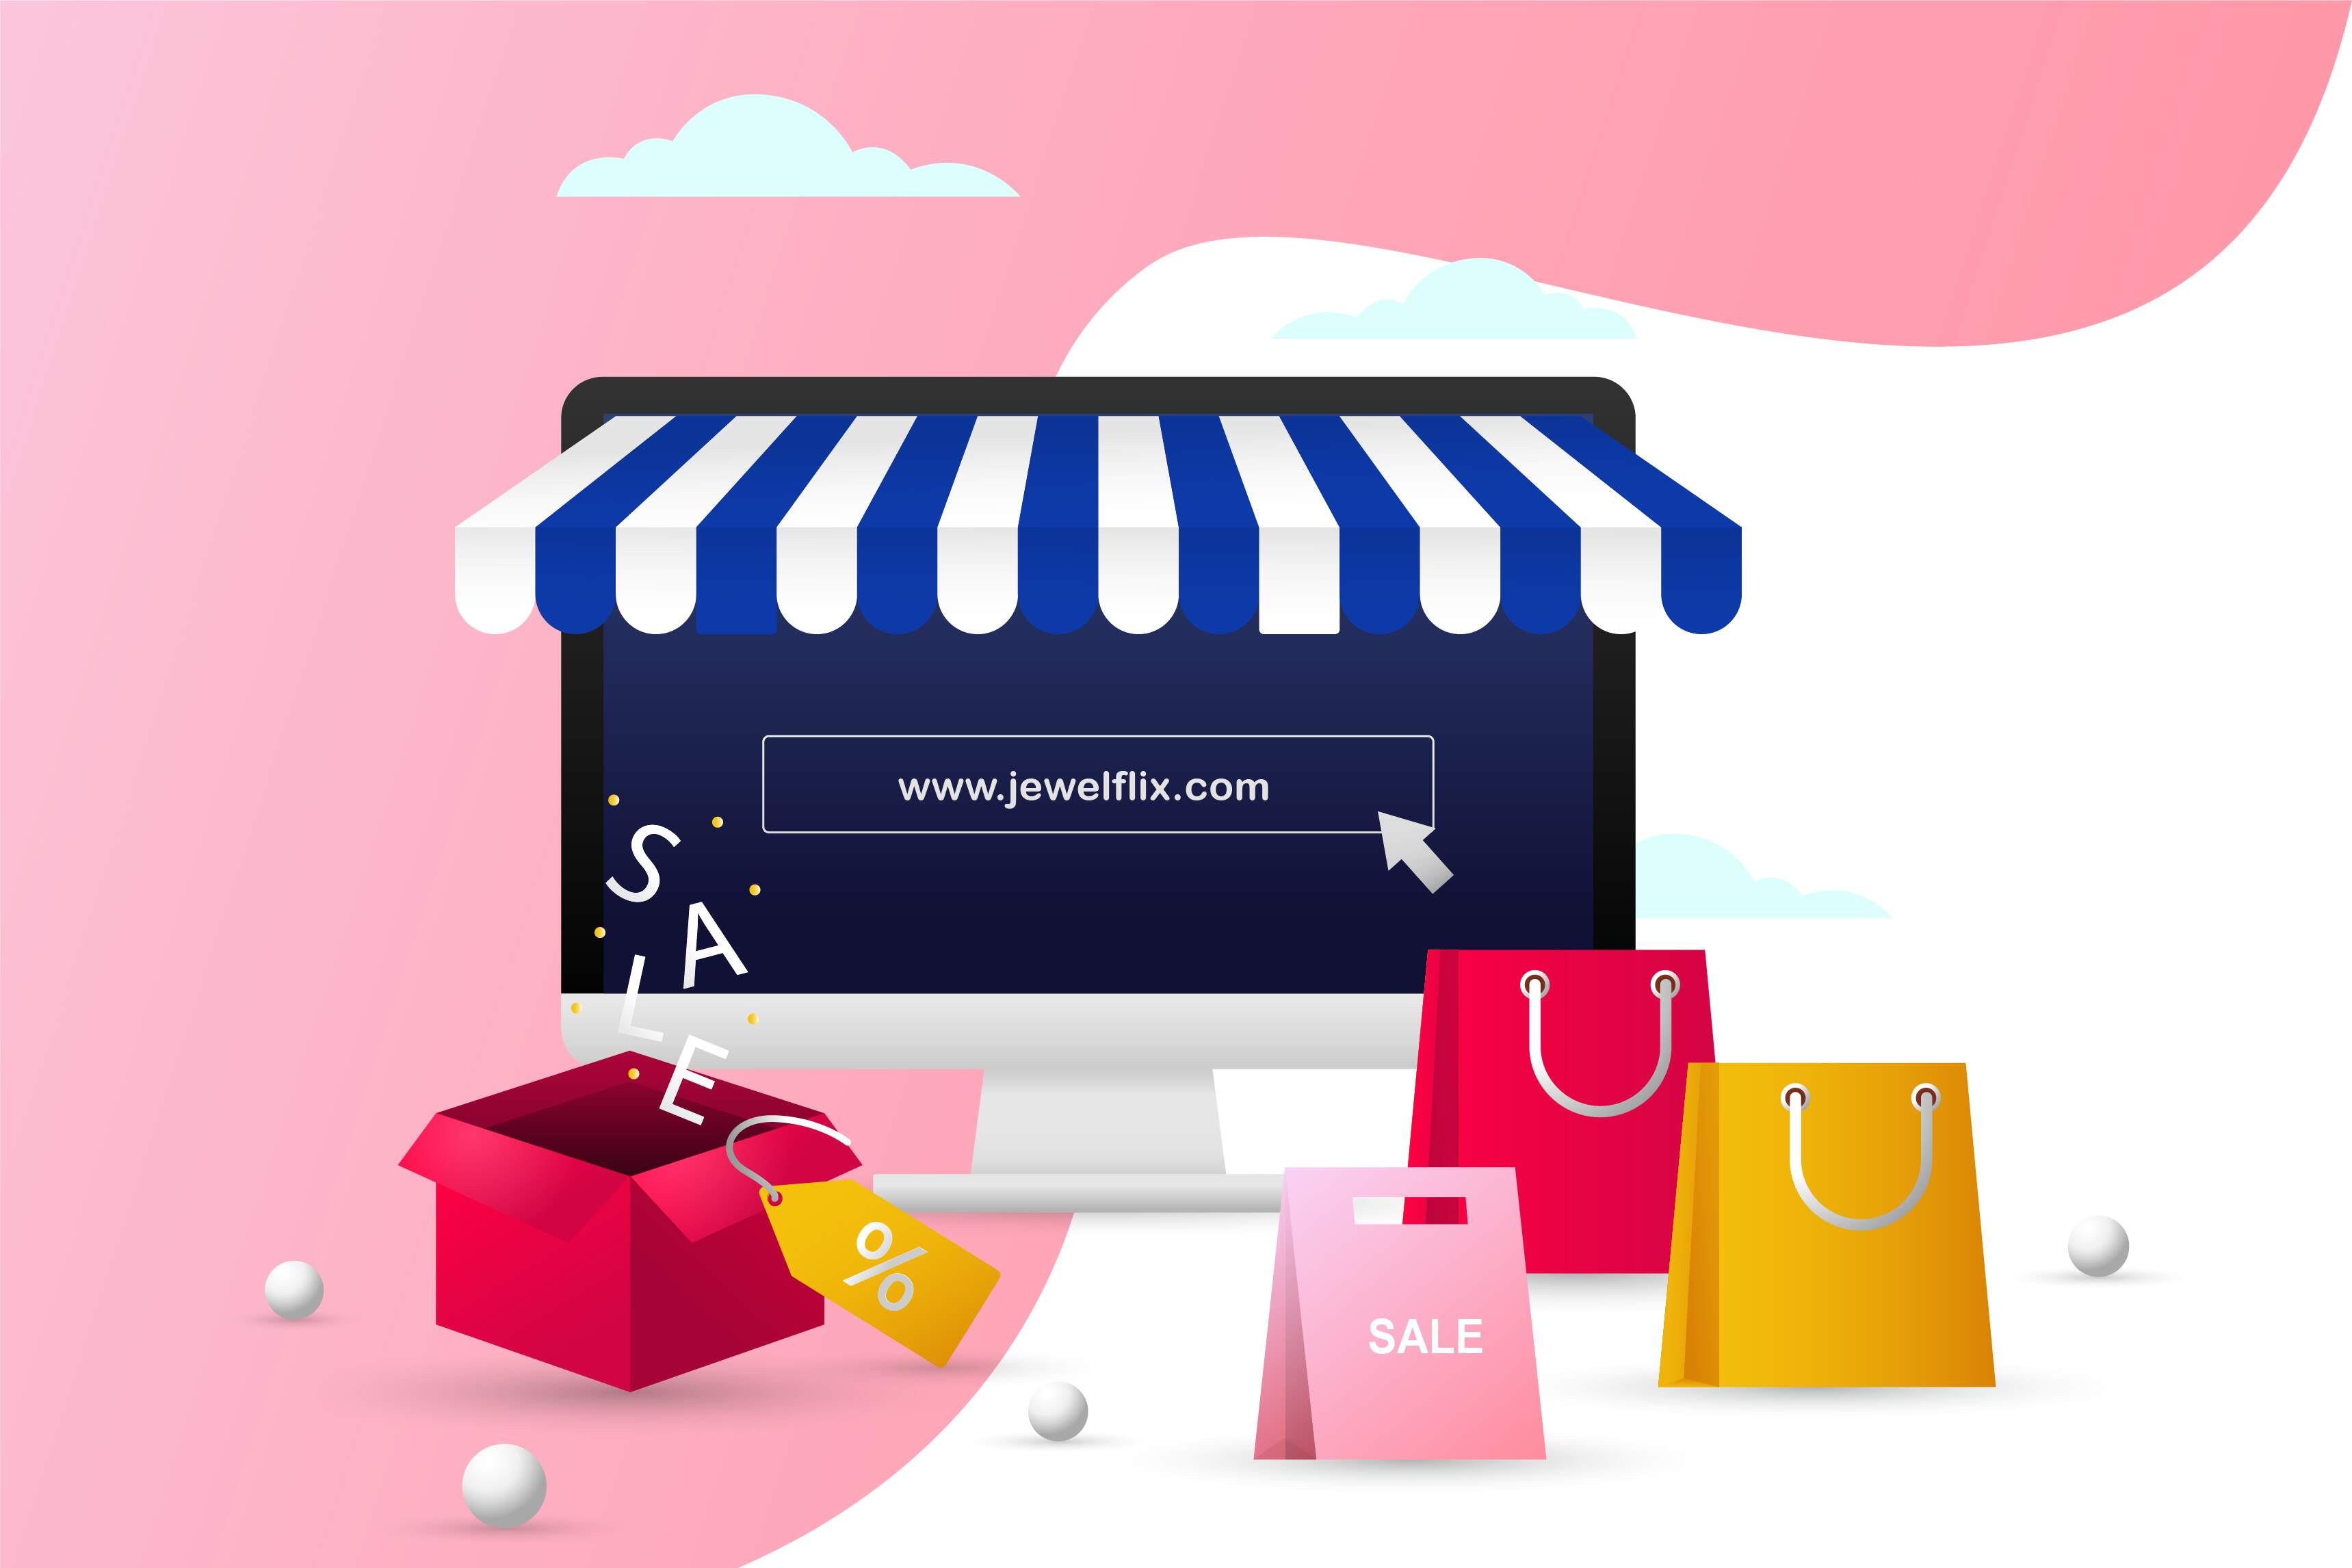 Find Statewise, Citywise & Nearby Jewellery Shops - JewelFlix